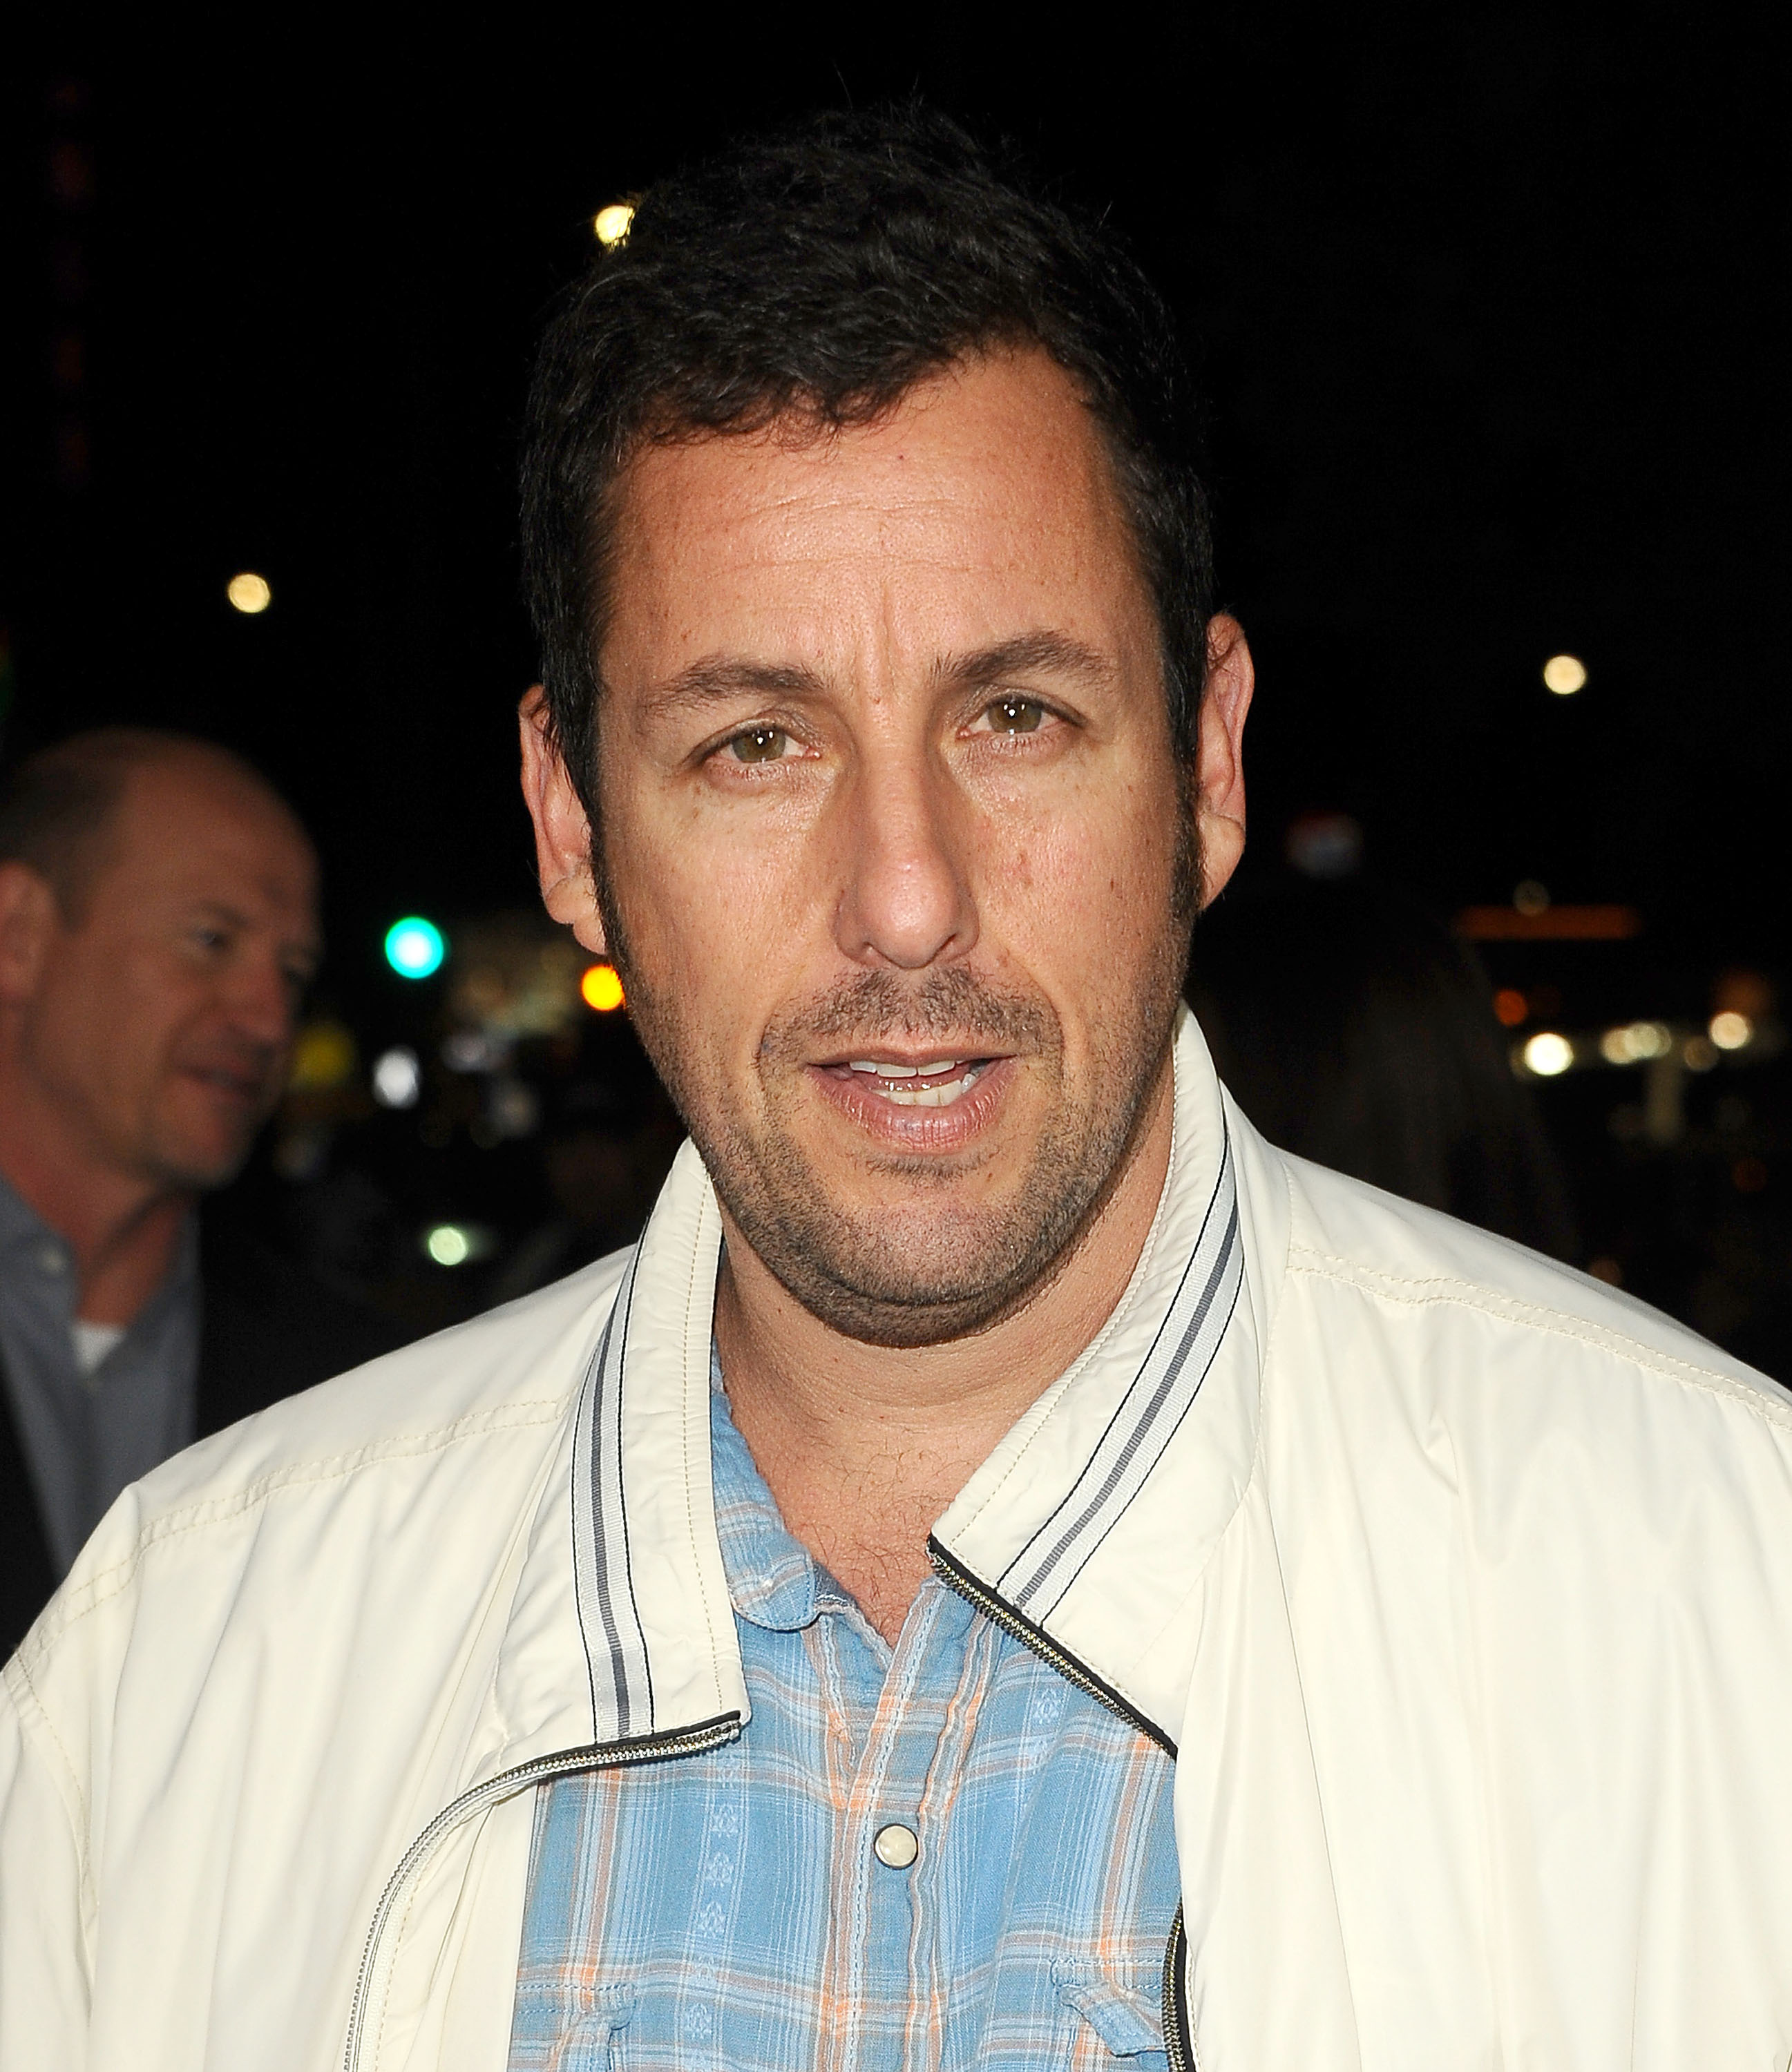 Actor Adam Sandler at the premiere of  Men, Women and Children  in Los Angeles, Ca. on Sep. 30, 2014.